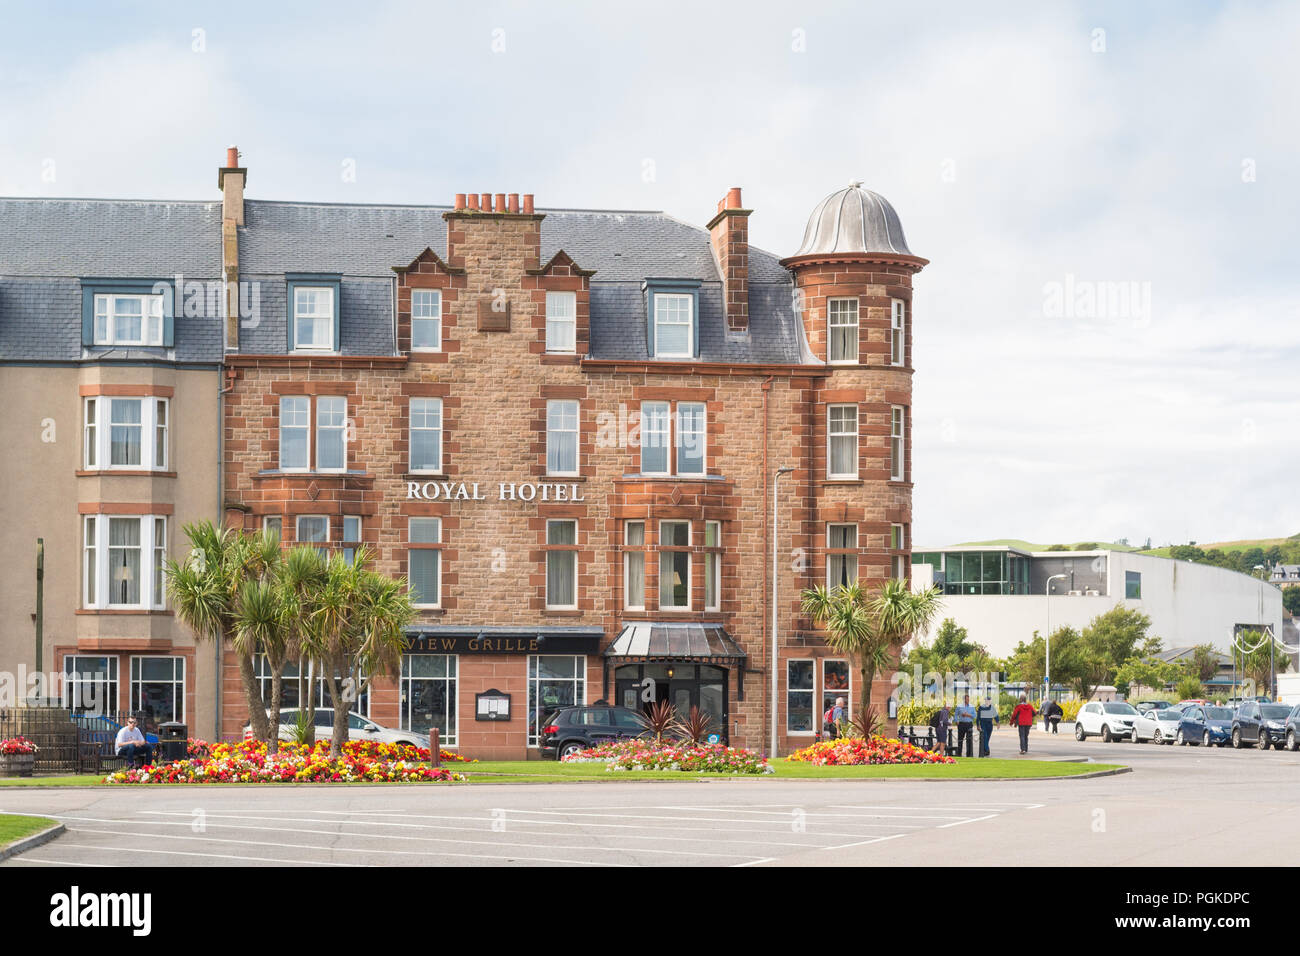 The Royal Hotel, Campbeltown, Kintyre, Argyll and Bute, Scotland, UK - Stock Image